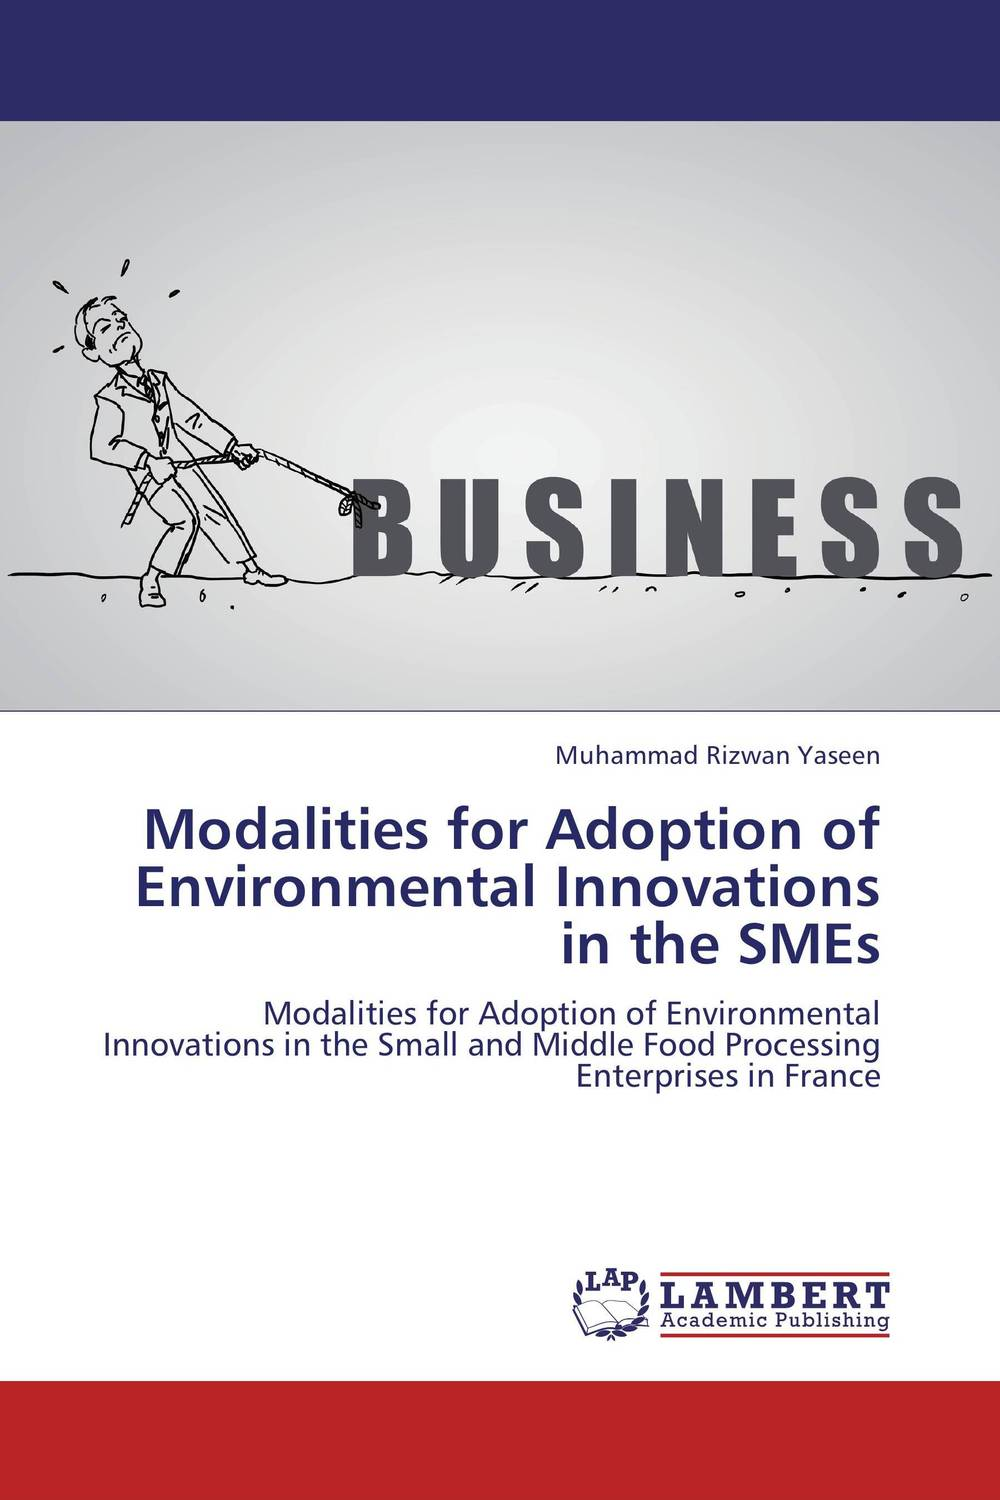 Modalities for Adoption of Environmental Innovations in the SMEs farm level adoption of water system innovations in semi arid areas